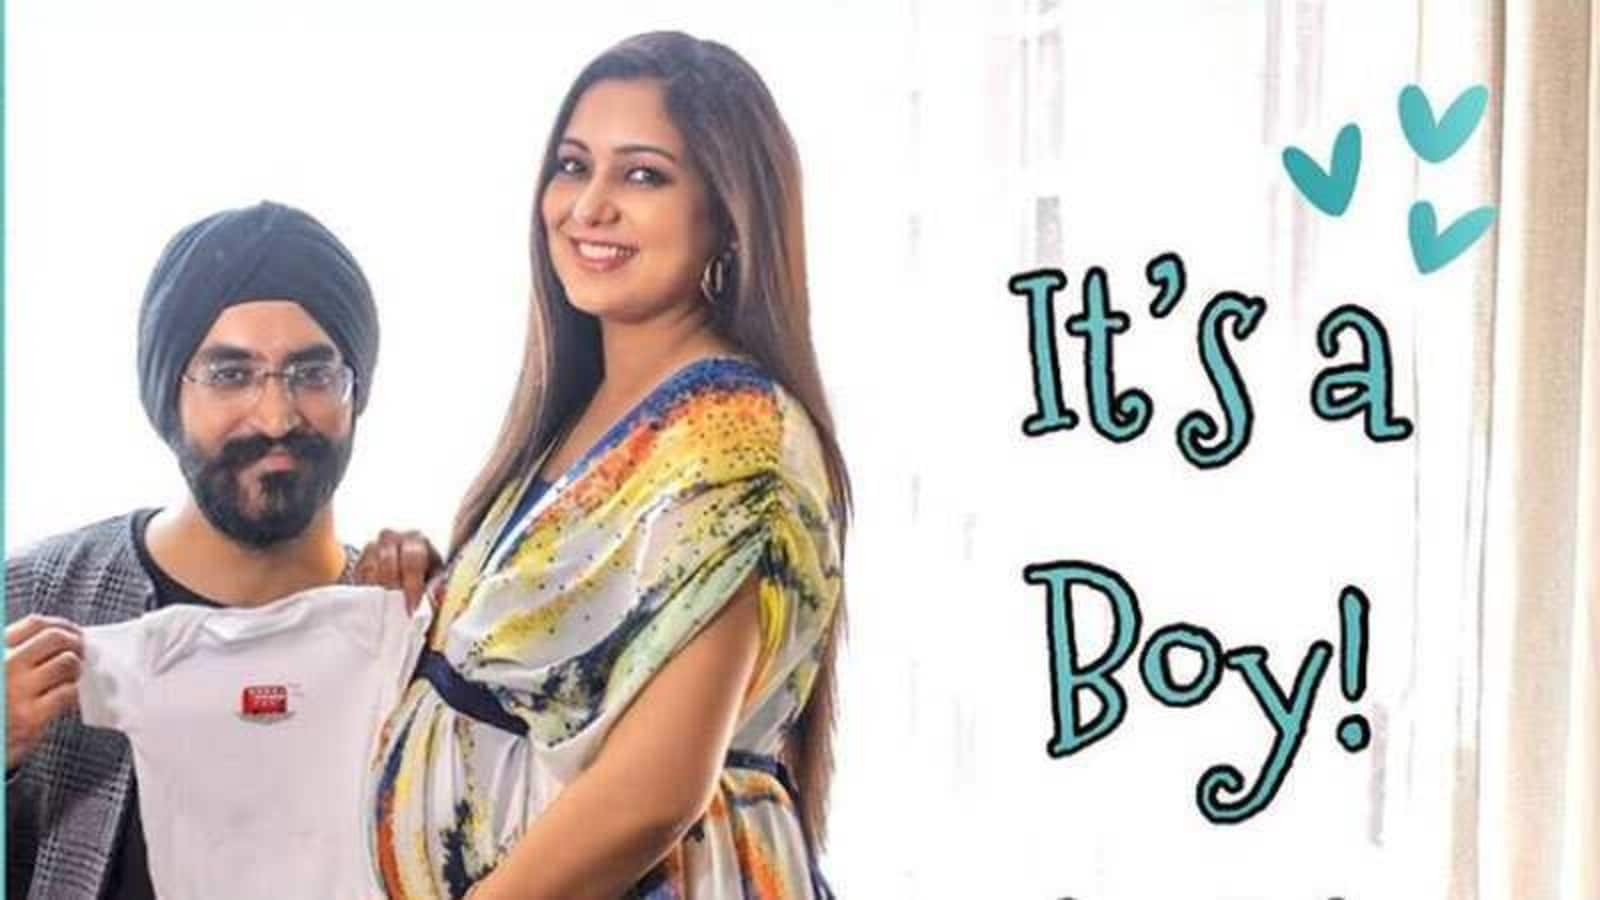 Harshdeep Kaur welcomes baby boy, says 'our Junior Singh has arrived' - Hindustan Times